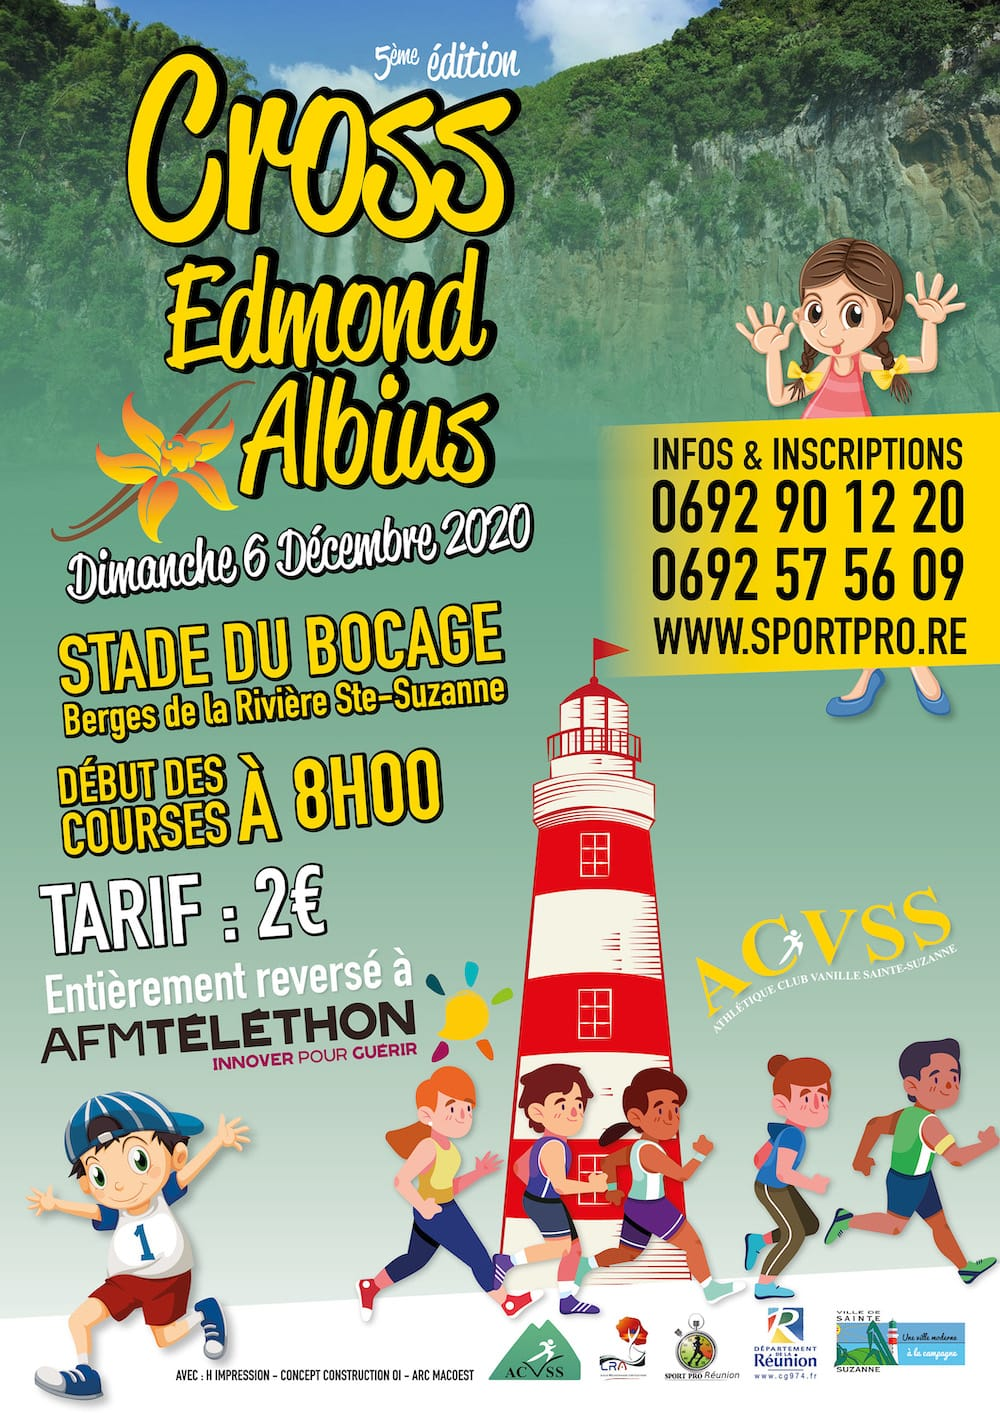 Affiche-Cross-Edmond-Albius-2020